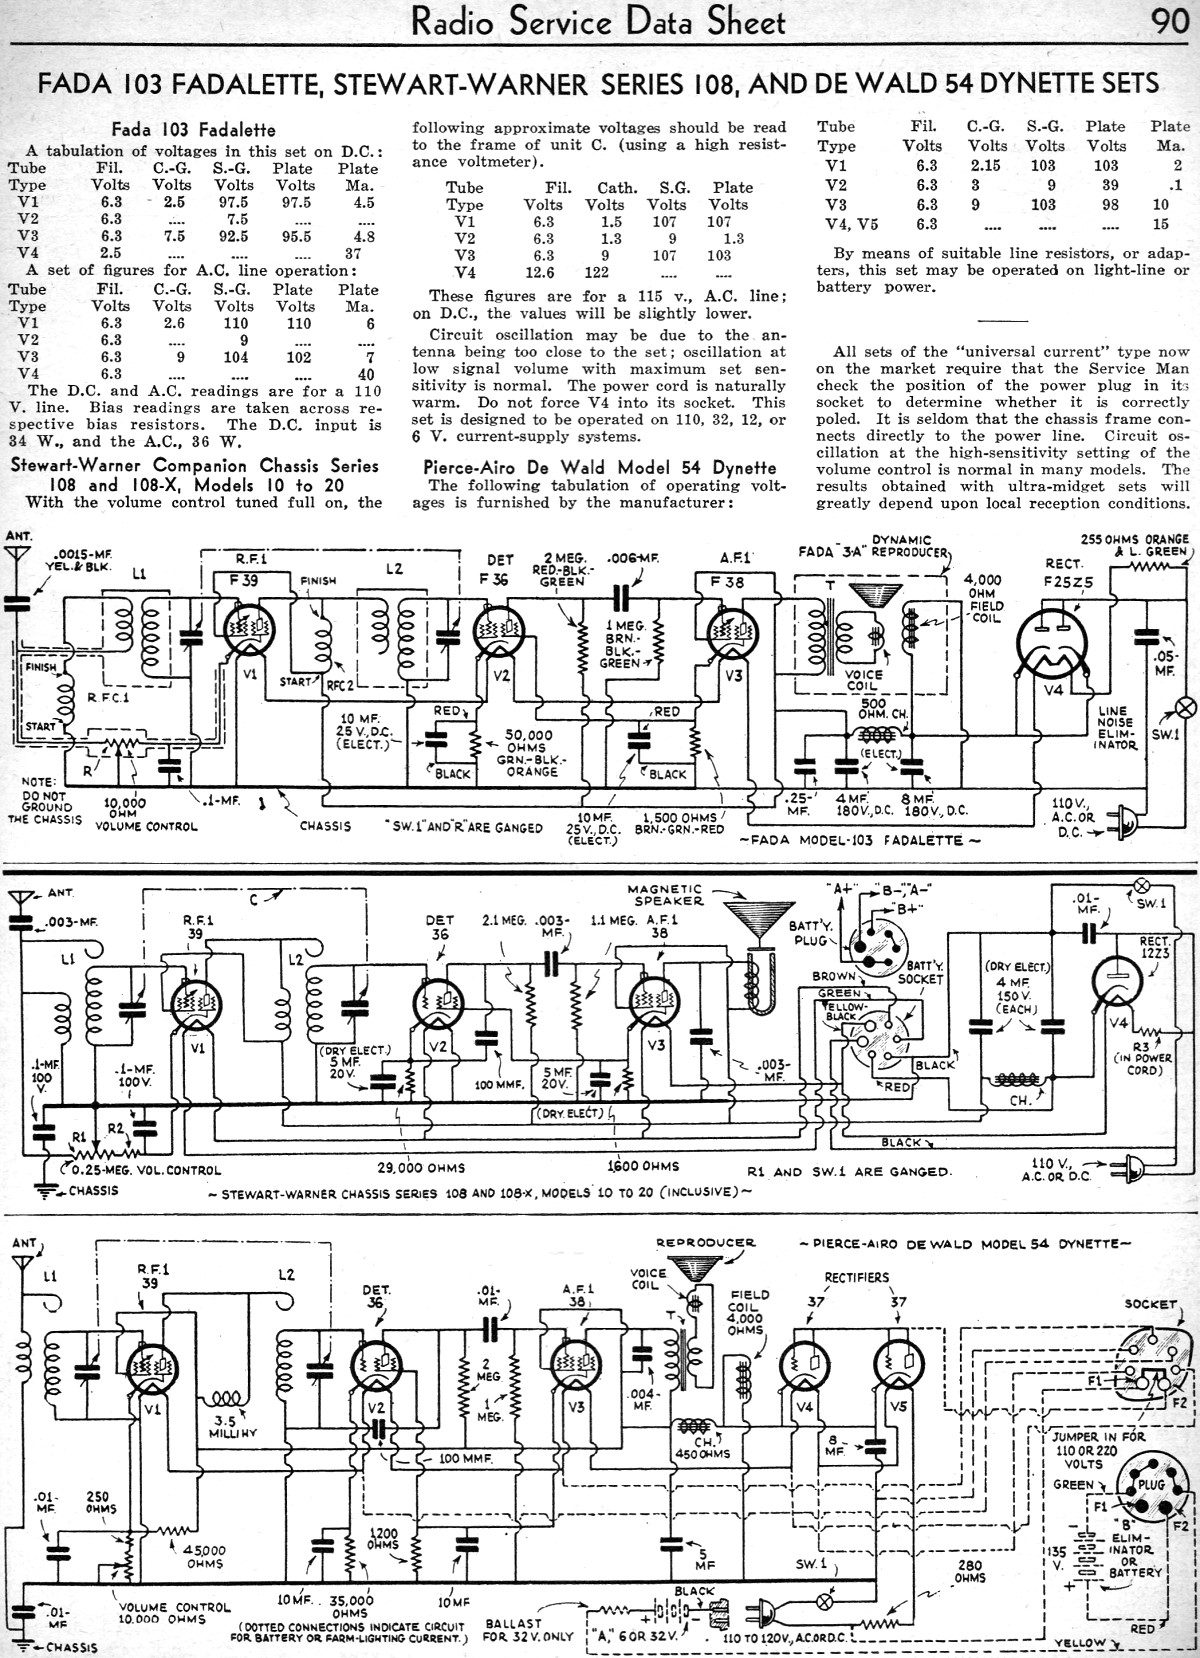 dewalt radio schematic ge radio schematic